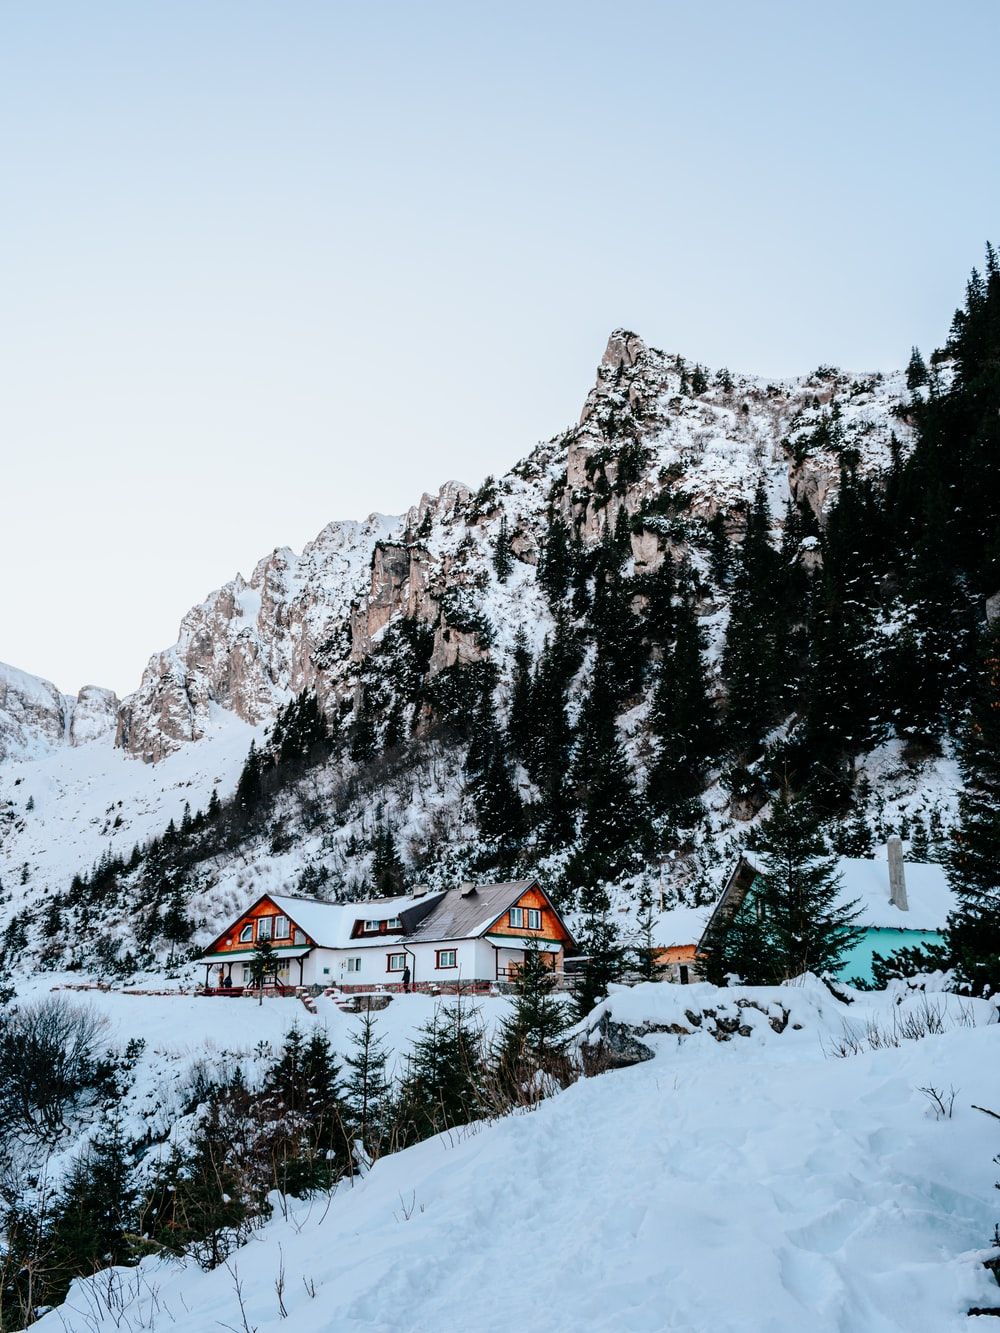 snow covered house near trees and mountain during daytime